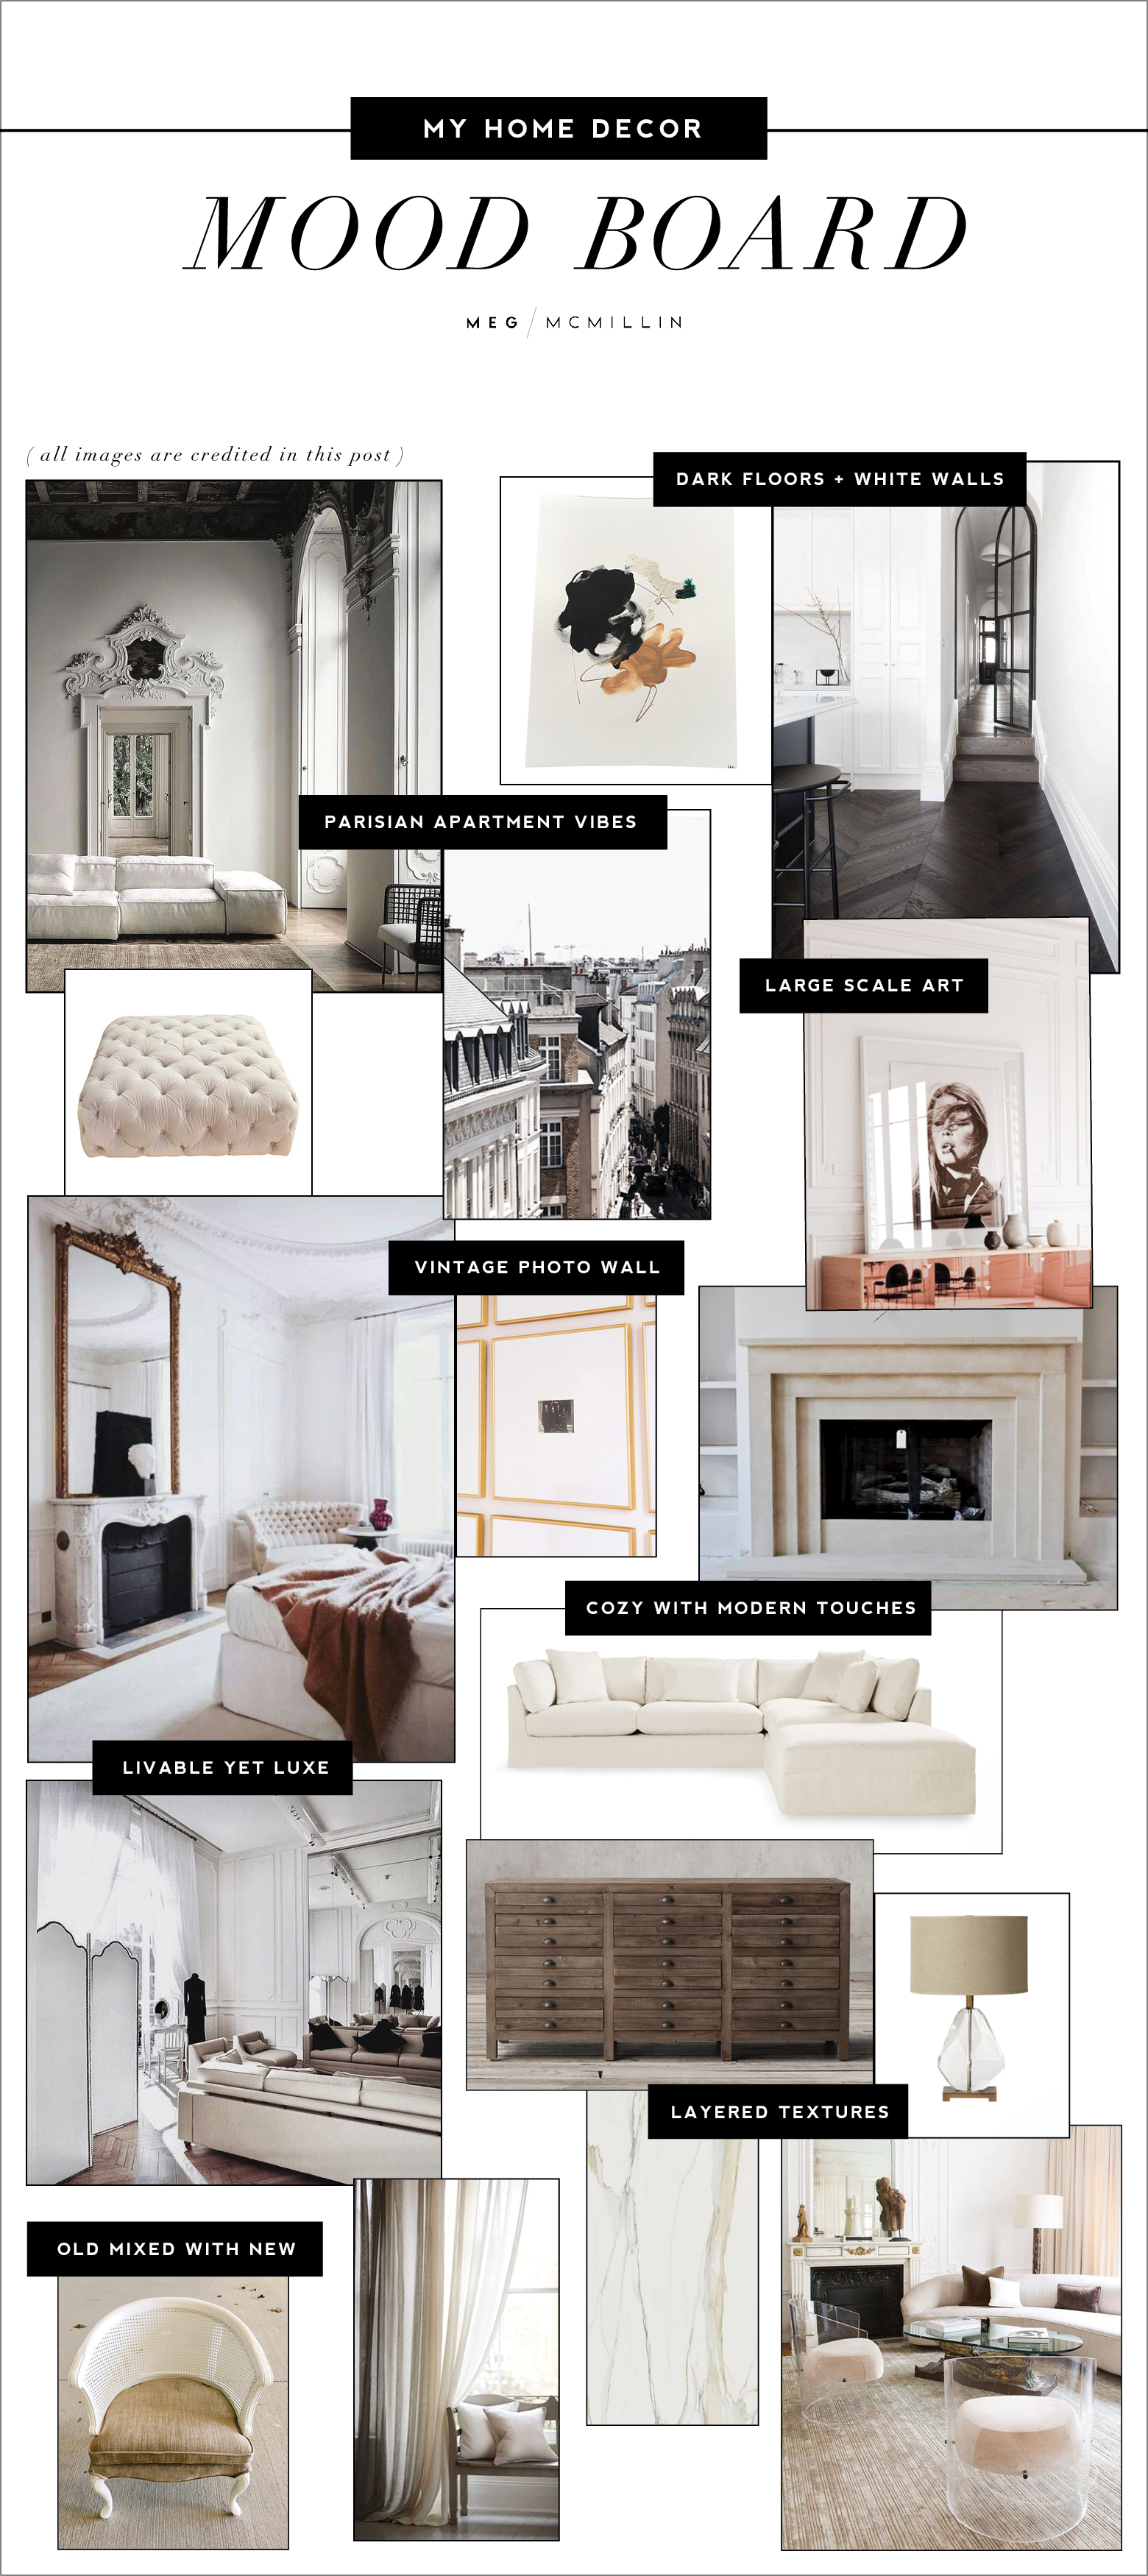 House Update My Home Decor Mood Board Meg Mcmillin